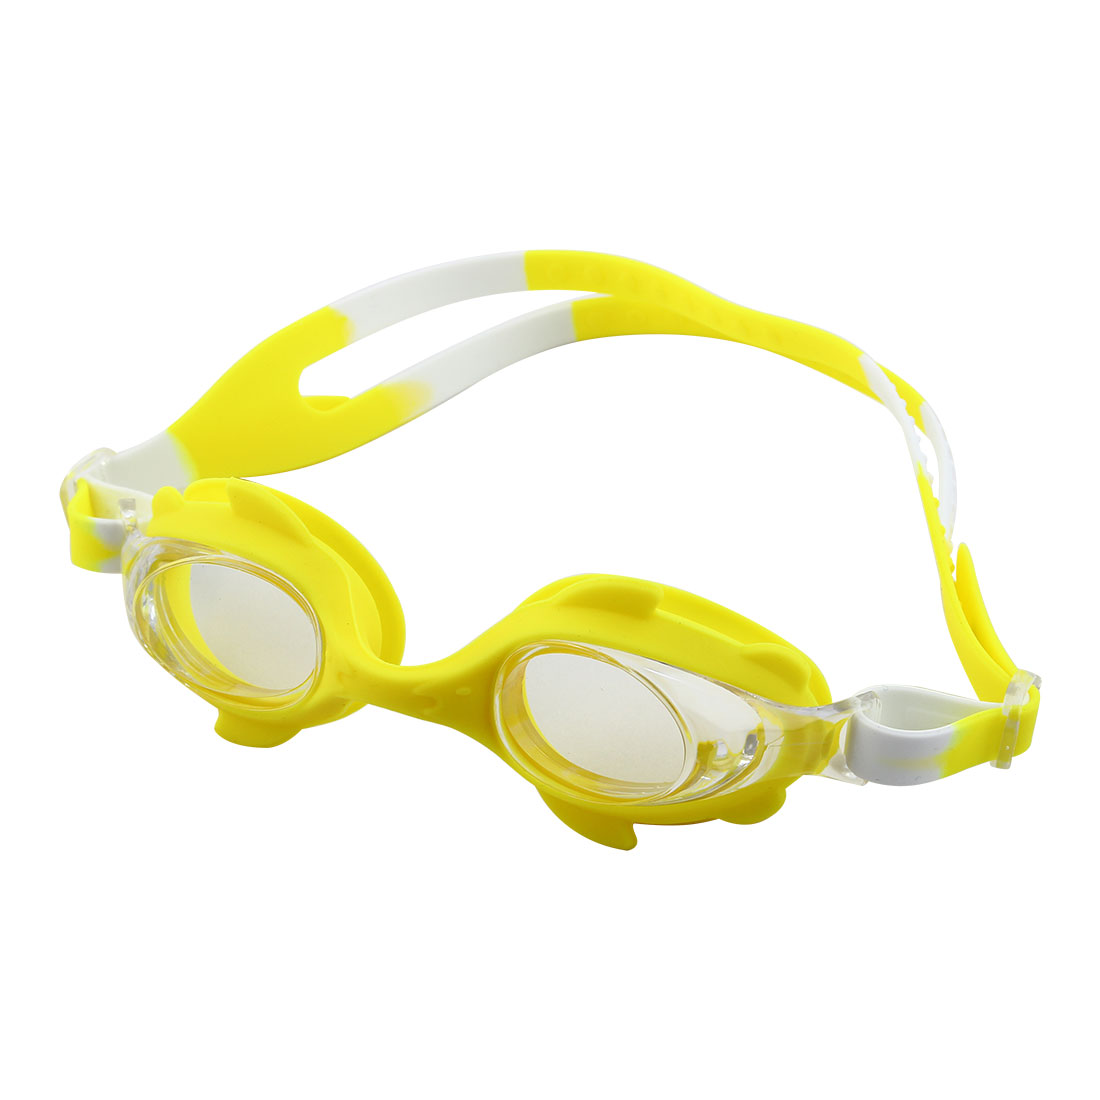 Clear Vision Anti Fog Adjustable Belt Swim Glasses Swimming Goggles Yellow w Storage Case for Youth Children